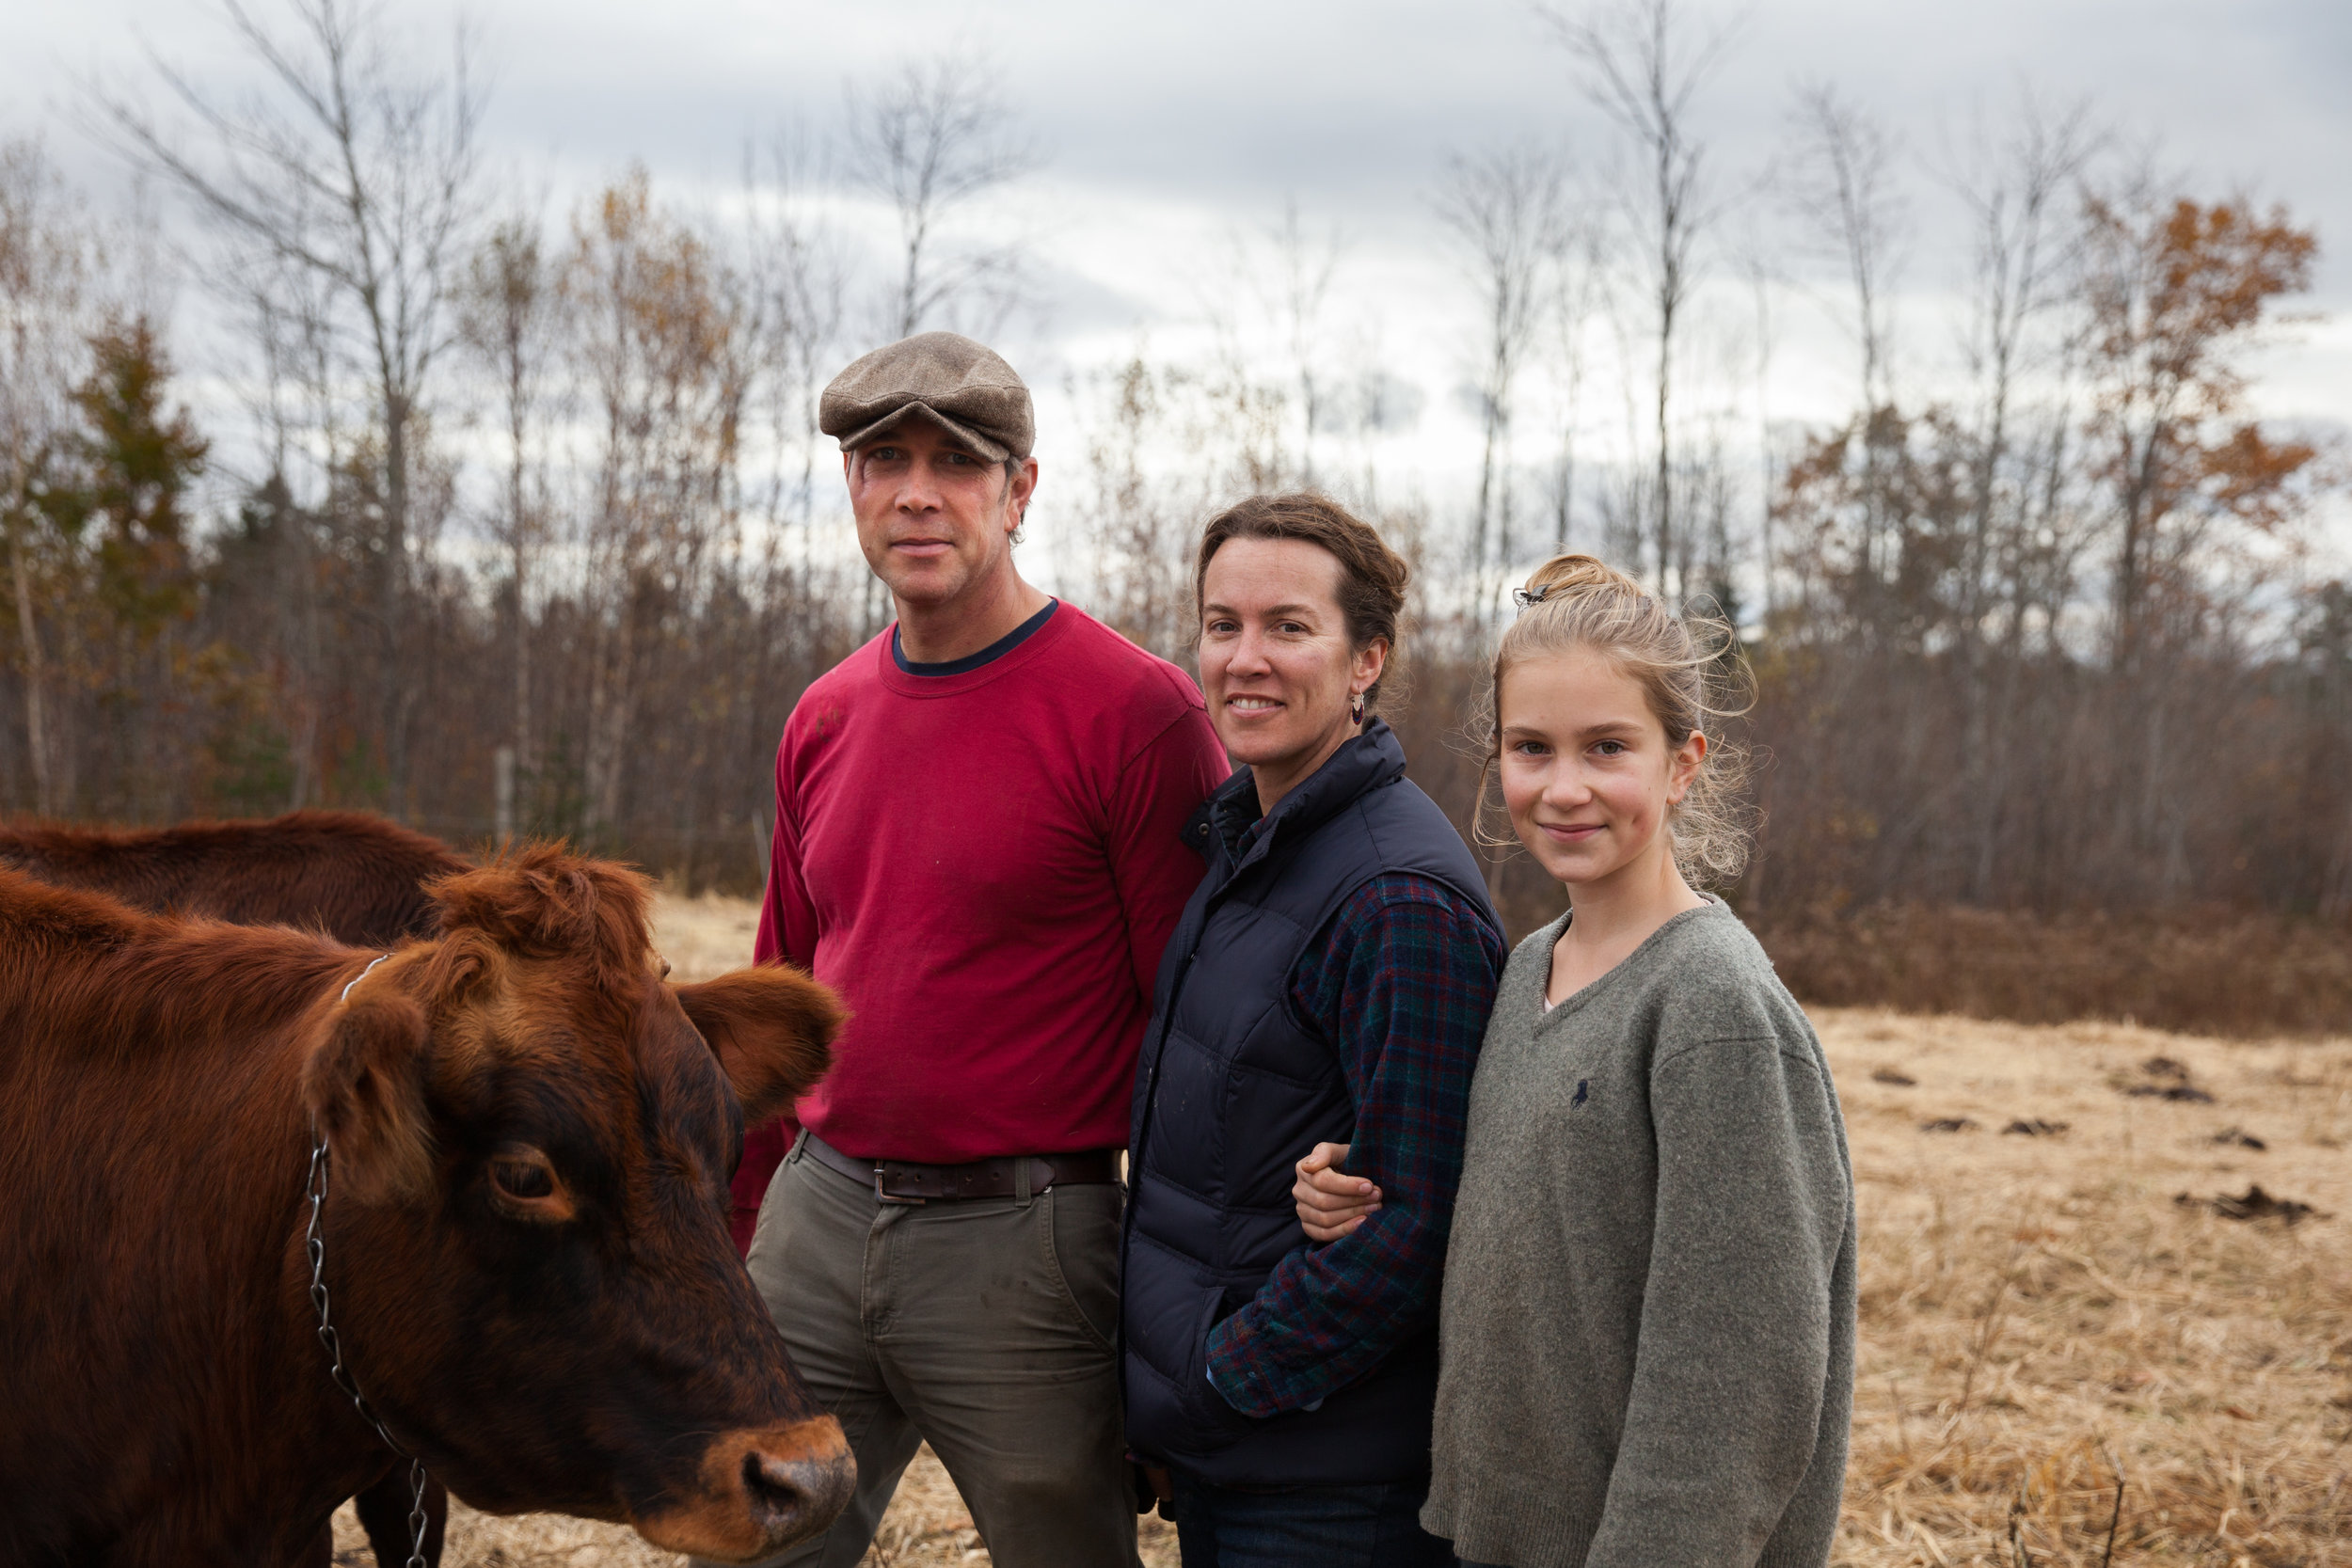 """The future of farming in Maine hangs in the balance. Its future very much depends on what we do now."" - heather & phil retberg, quills end farm, penobscot"